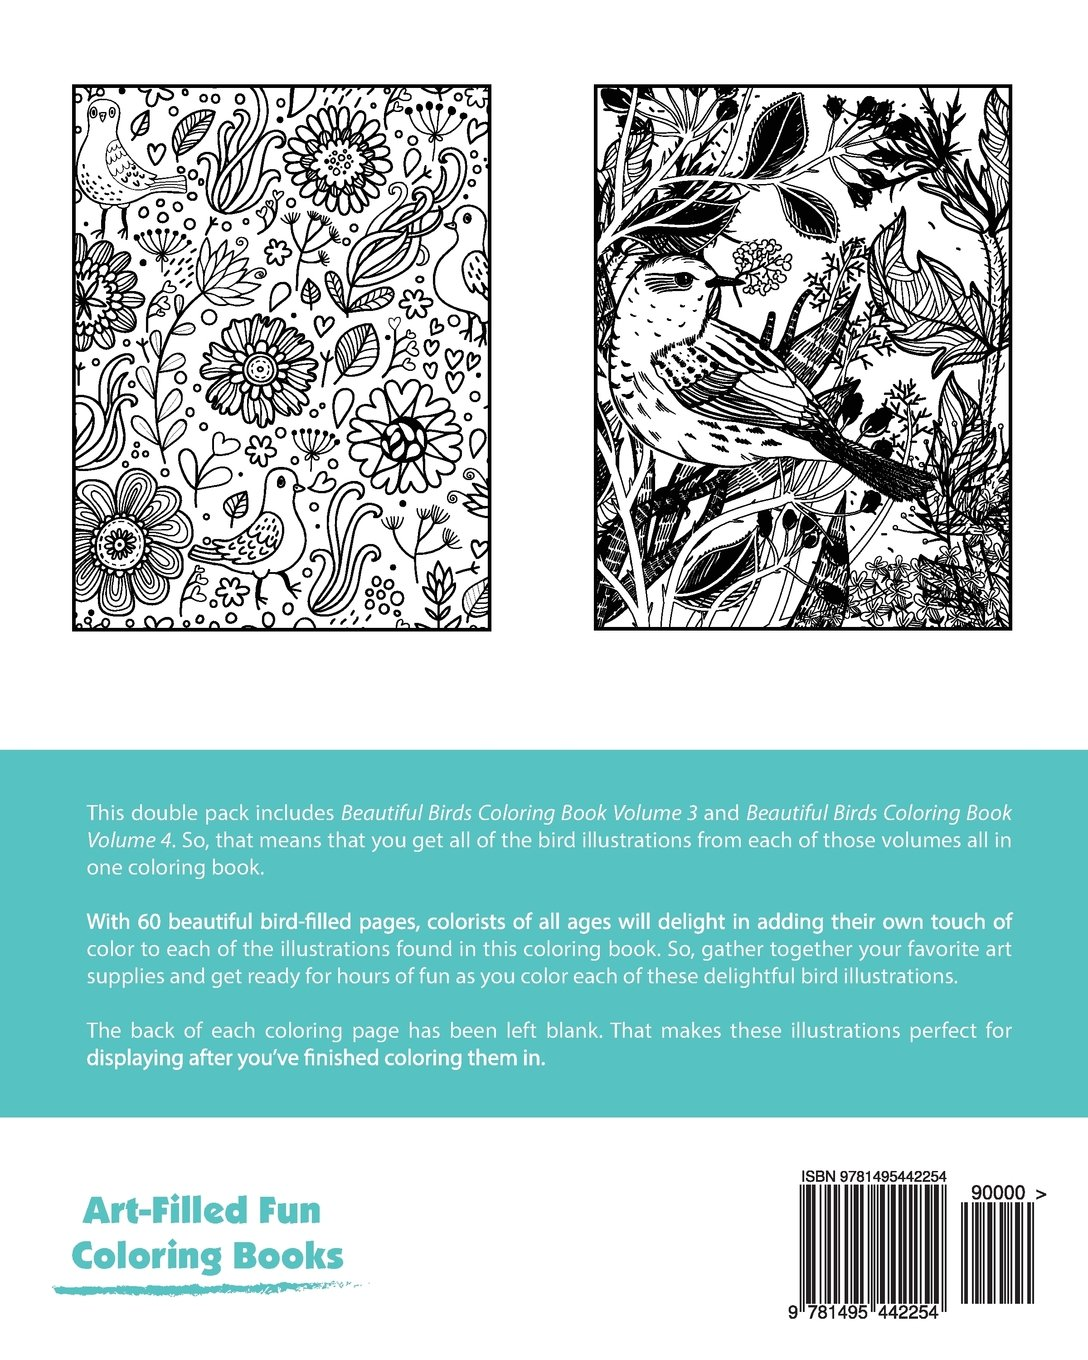 Beautiful Birds Coloring Book Double Pack (Volumes 3 & 4) (Art ...